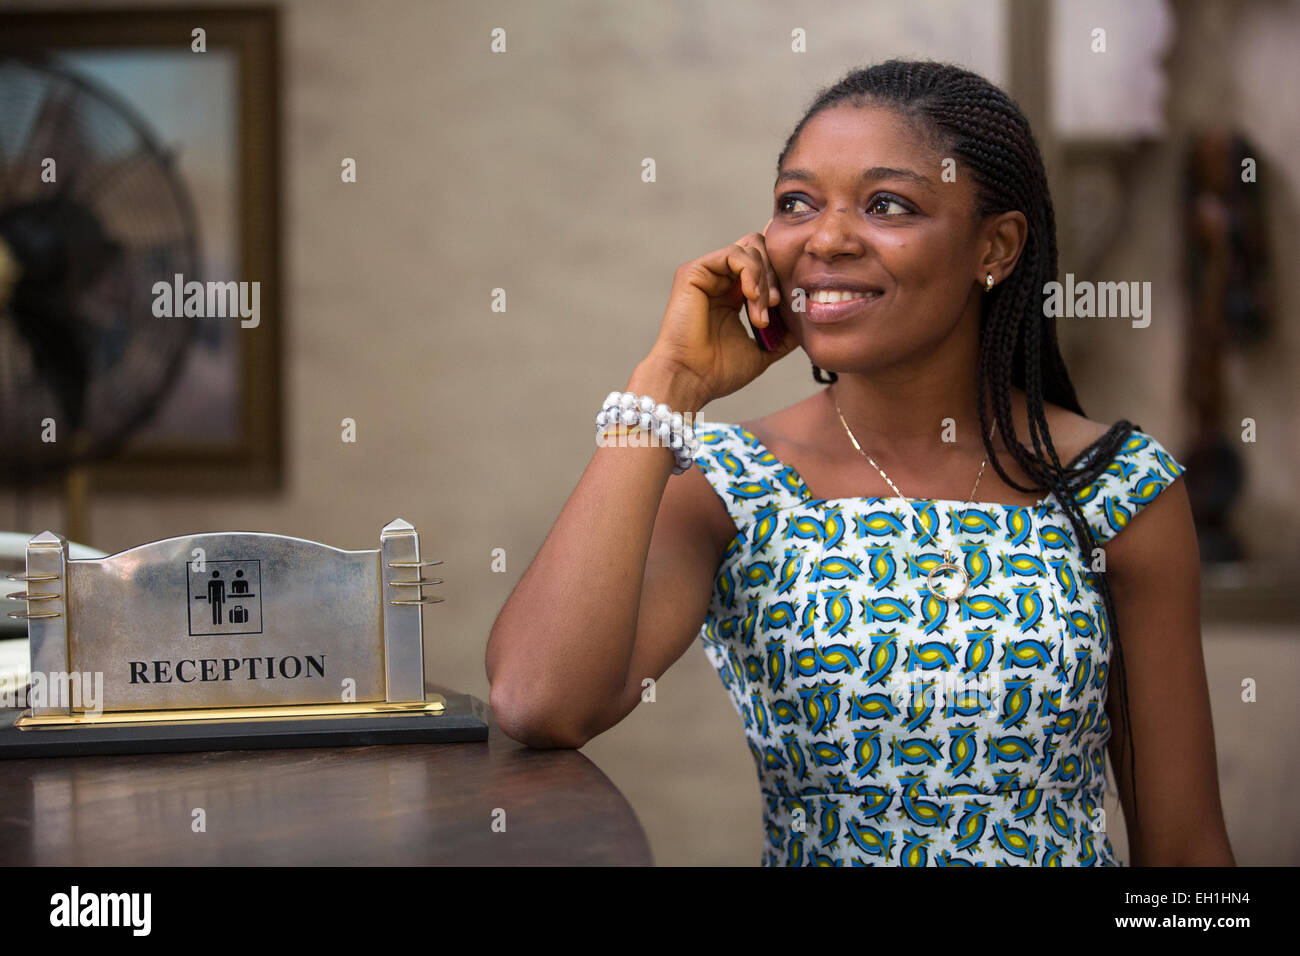 Lagos, Nigeria; A young woman on her mobile phone in a hotel lobby. - Stock Image